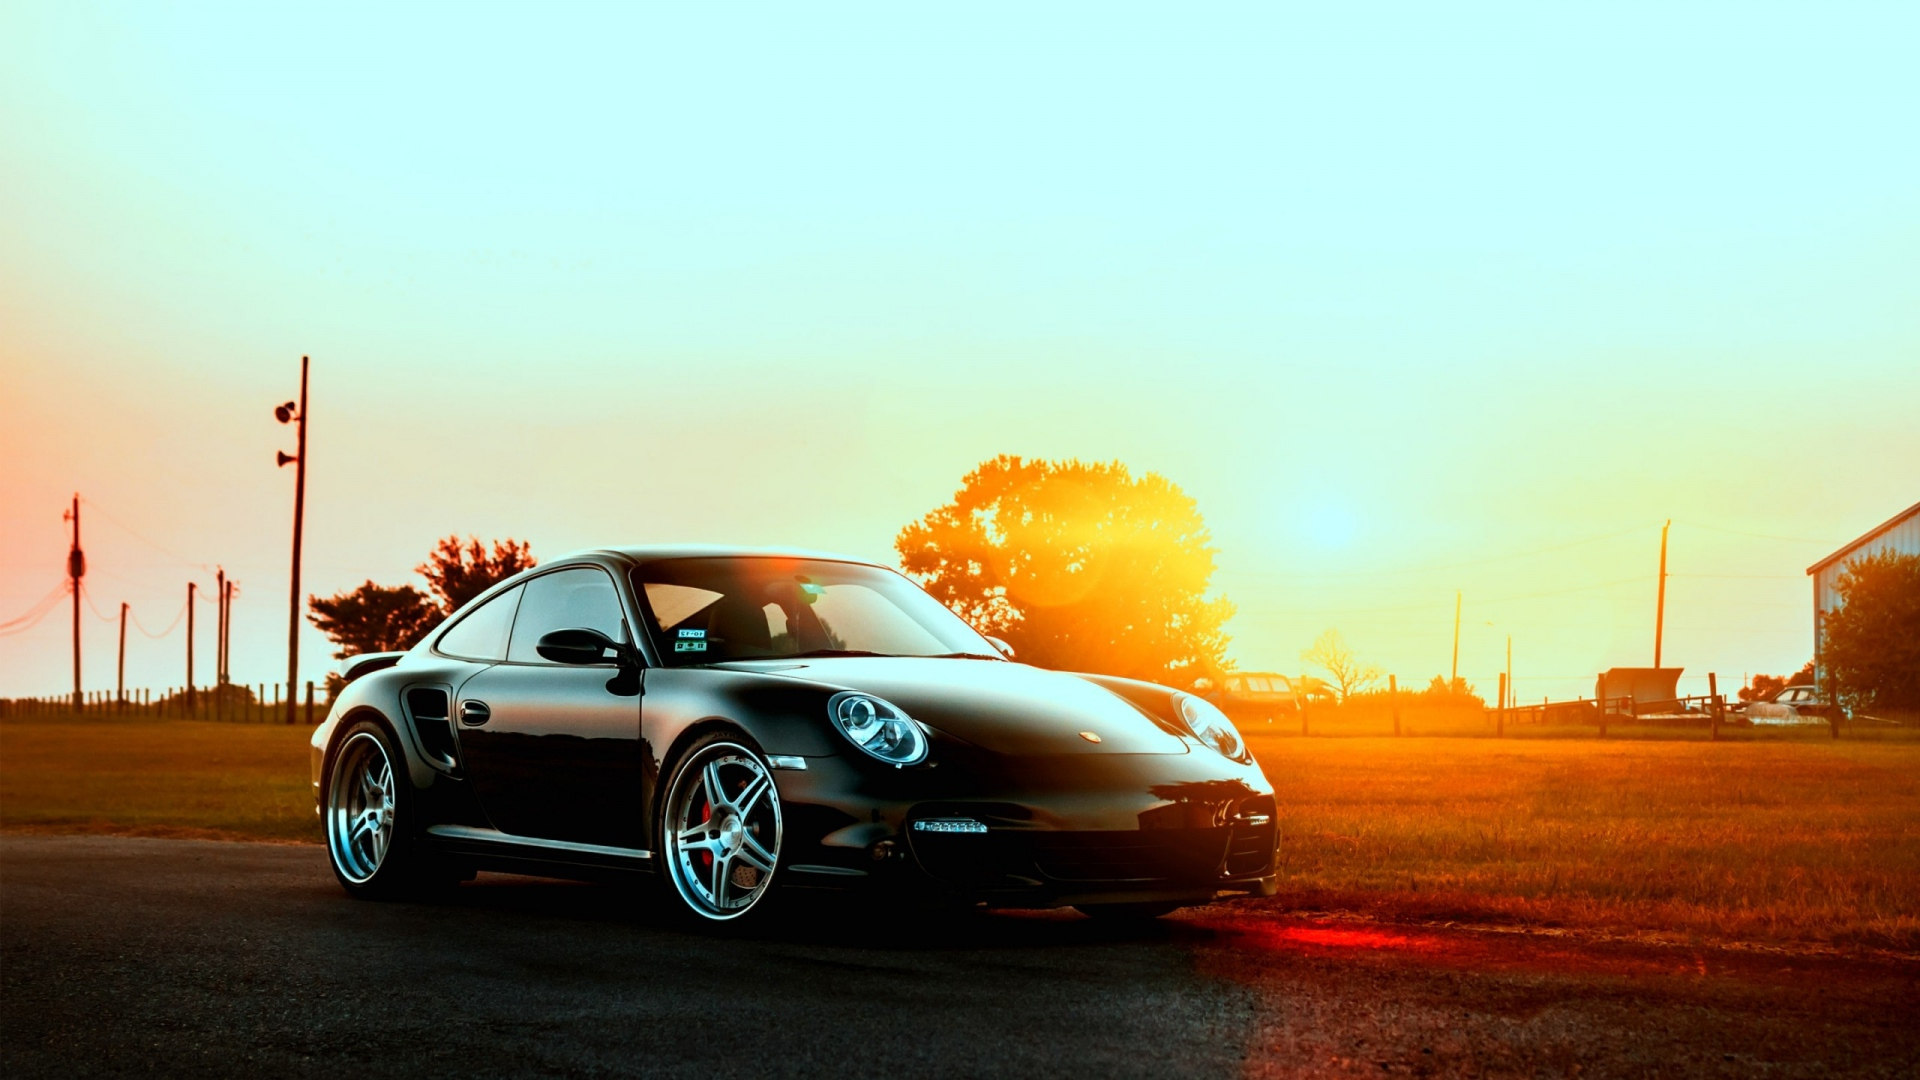 Collection of Hd Wallpapers Cars on HDWallpapers 1920x1080